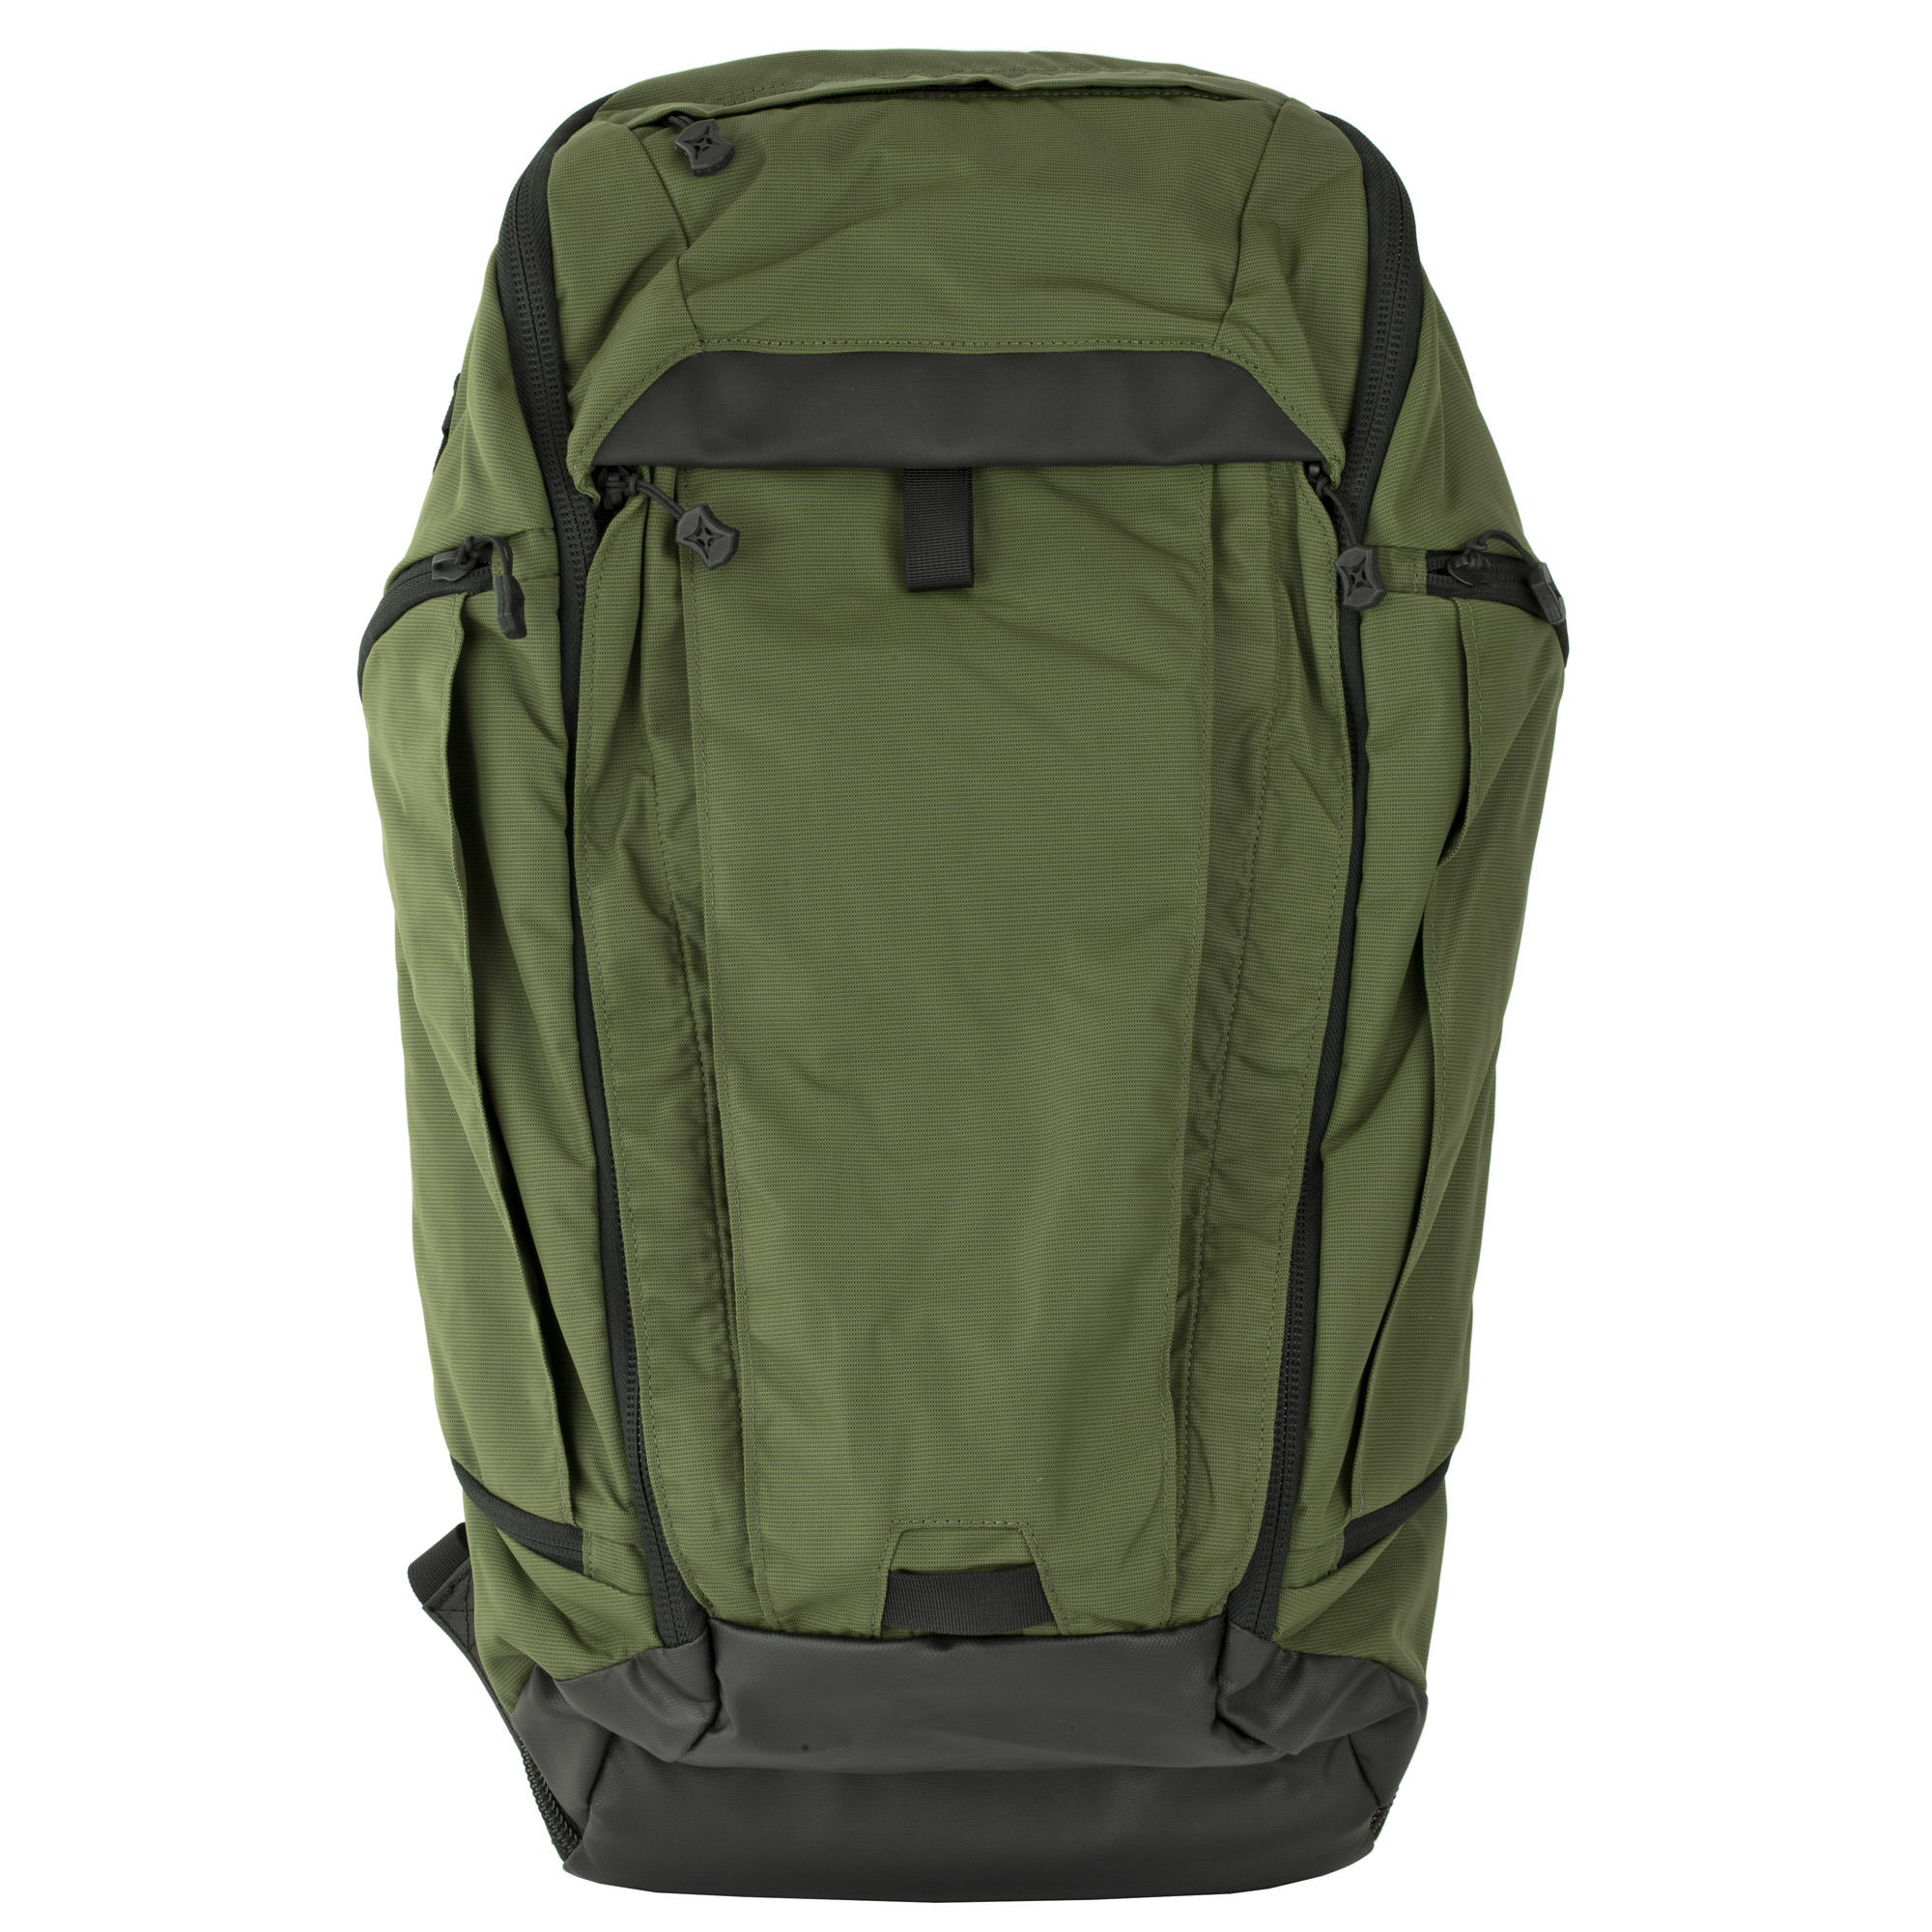 """The Gamut Checkpoint's sleek styling and an unassuming faade conceal the capabilities provided in this full-featured rifle-friendly gear hauler. Equally adept on the trail and the street"""" the emphasis is on efficient organization of an extensive loadout that is easy to access yet protected by subtle pilfer-resistant construction features. The internal MOLLE panel and multiple VELCRO Brand loop panels let you customize the configuration of essential gear to best suit your needs."""